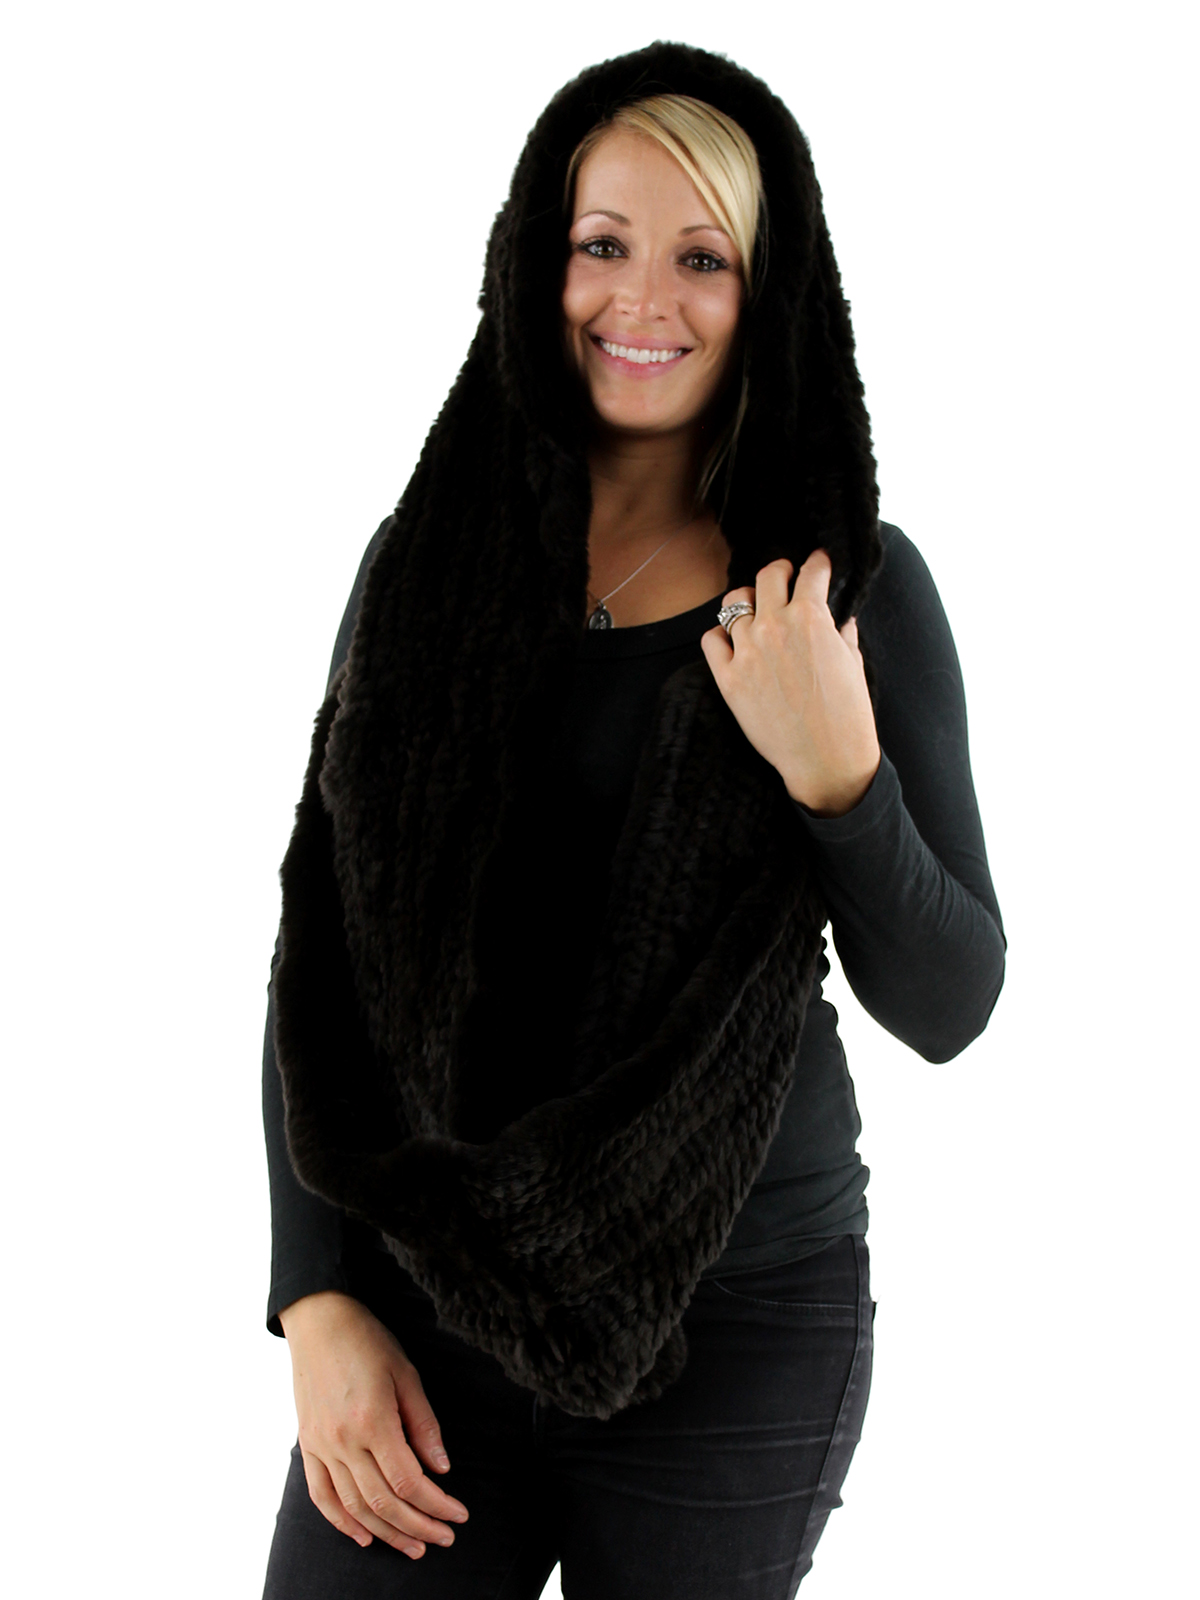 Brown Rex Rabbit Fur Infinity Neck Warmer with Hood